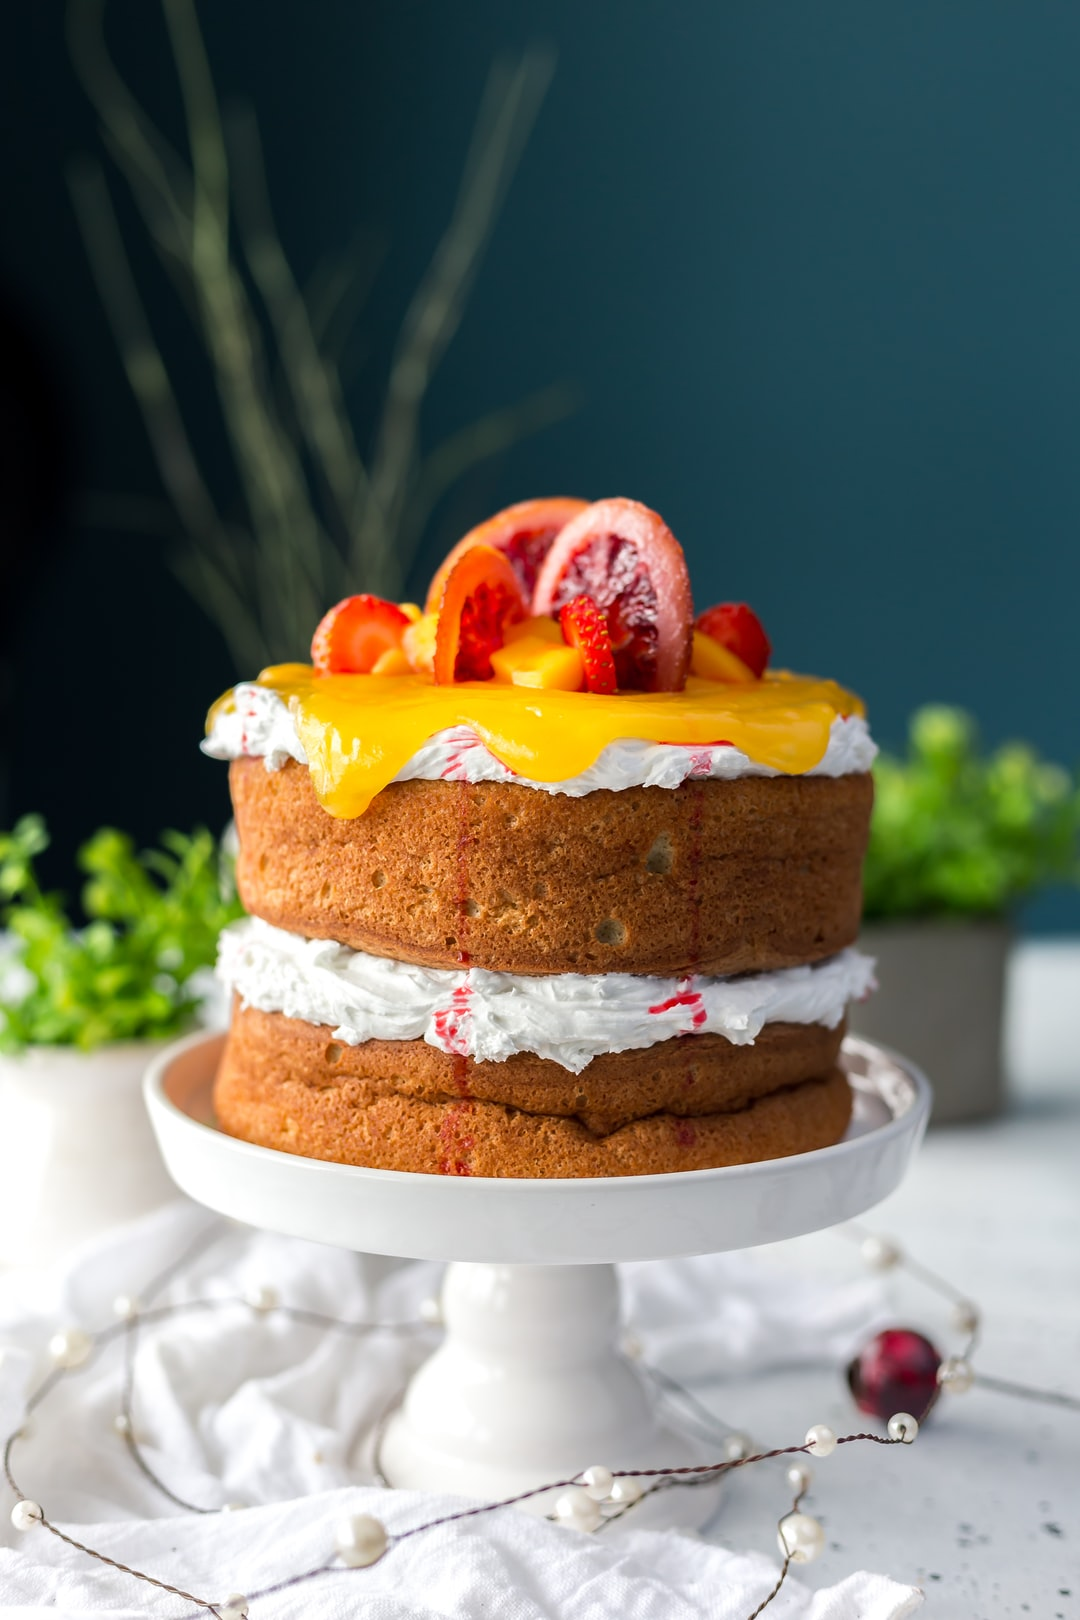 Topped with candied blood orange slices, this cake is the epitome of pure decadence.